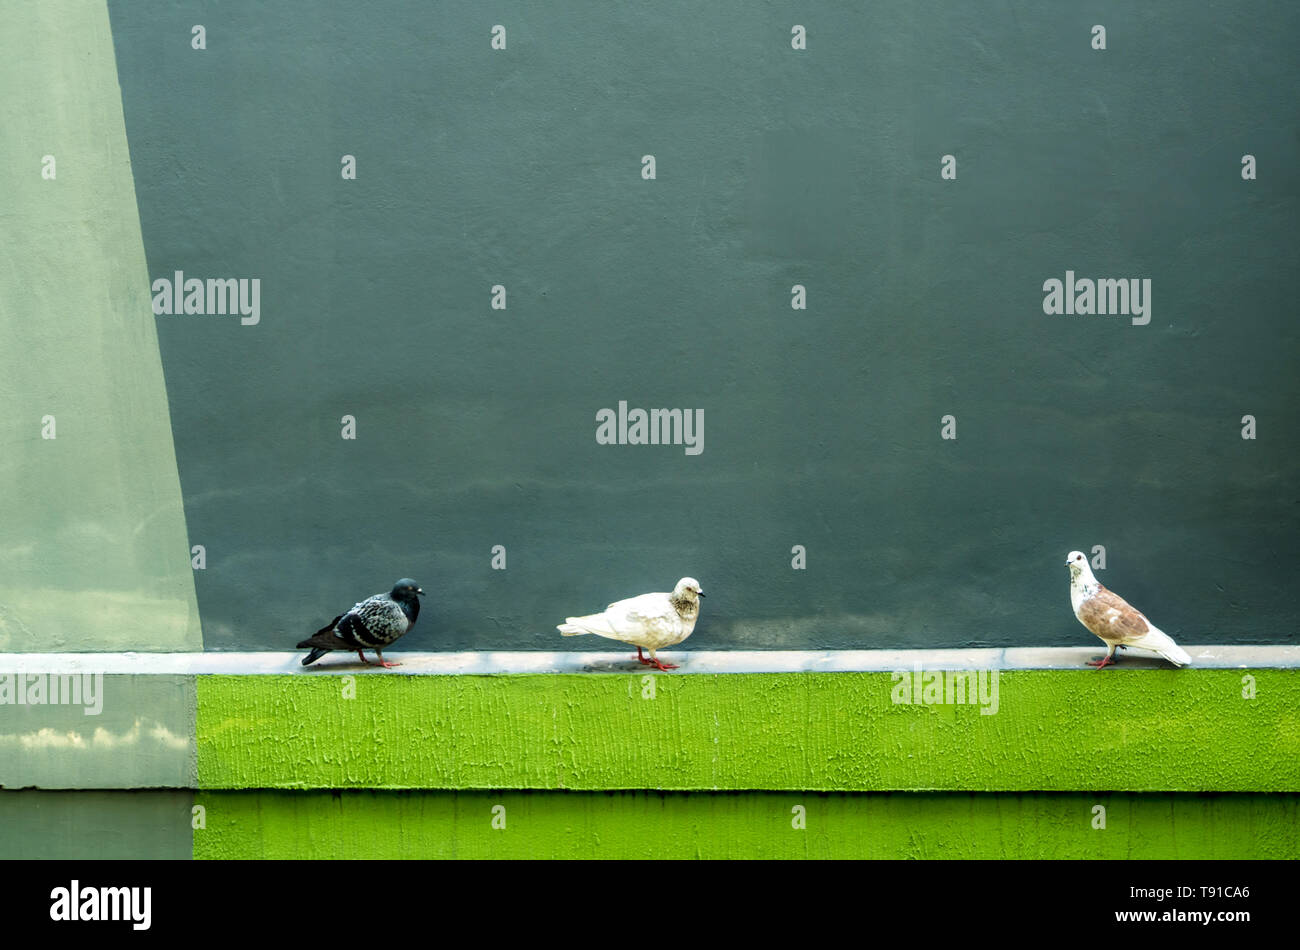 Three Pigeons resting on the concrete moulding beside the building - Stock Image